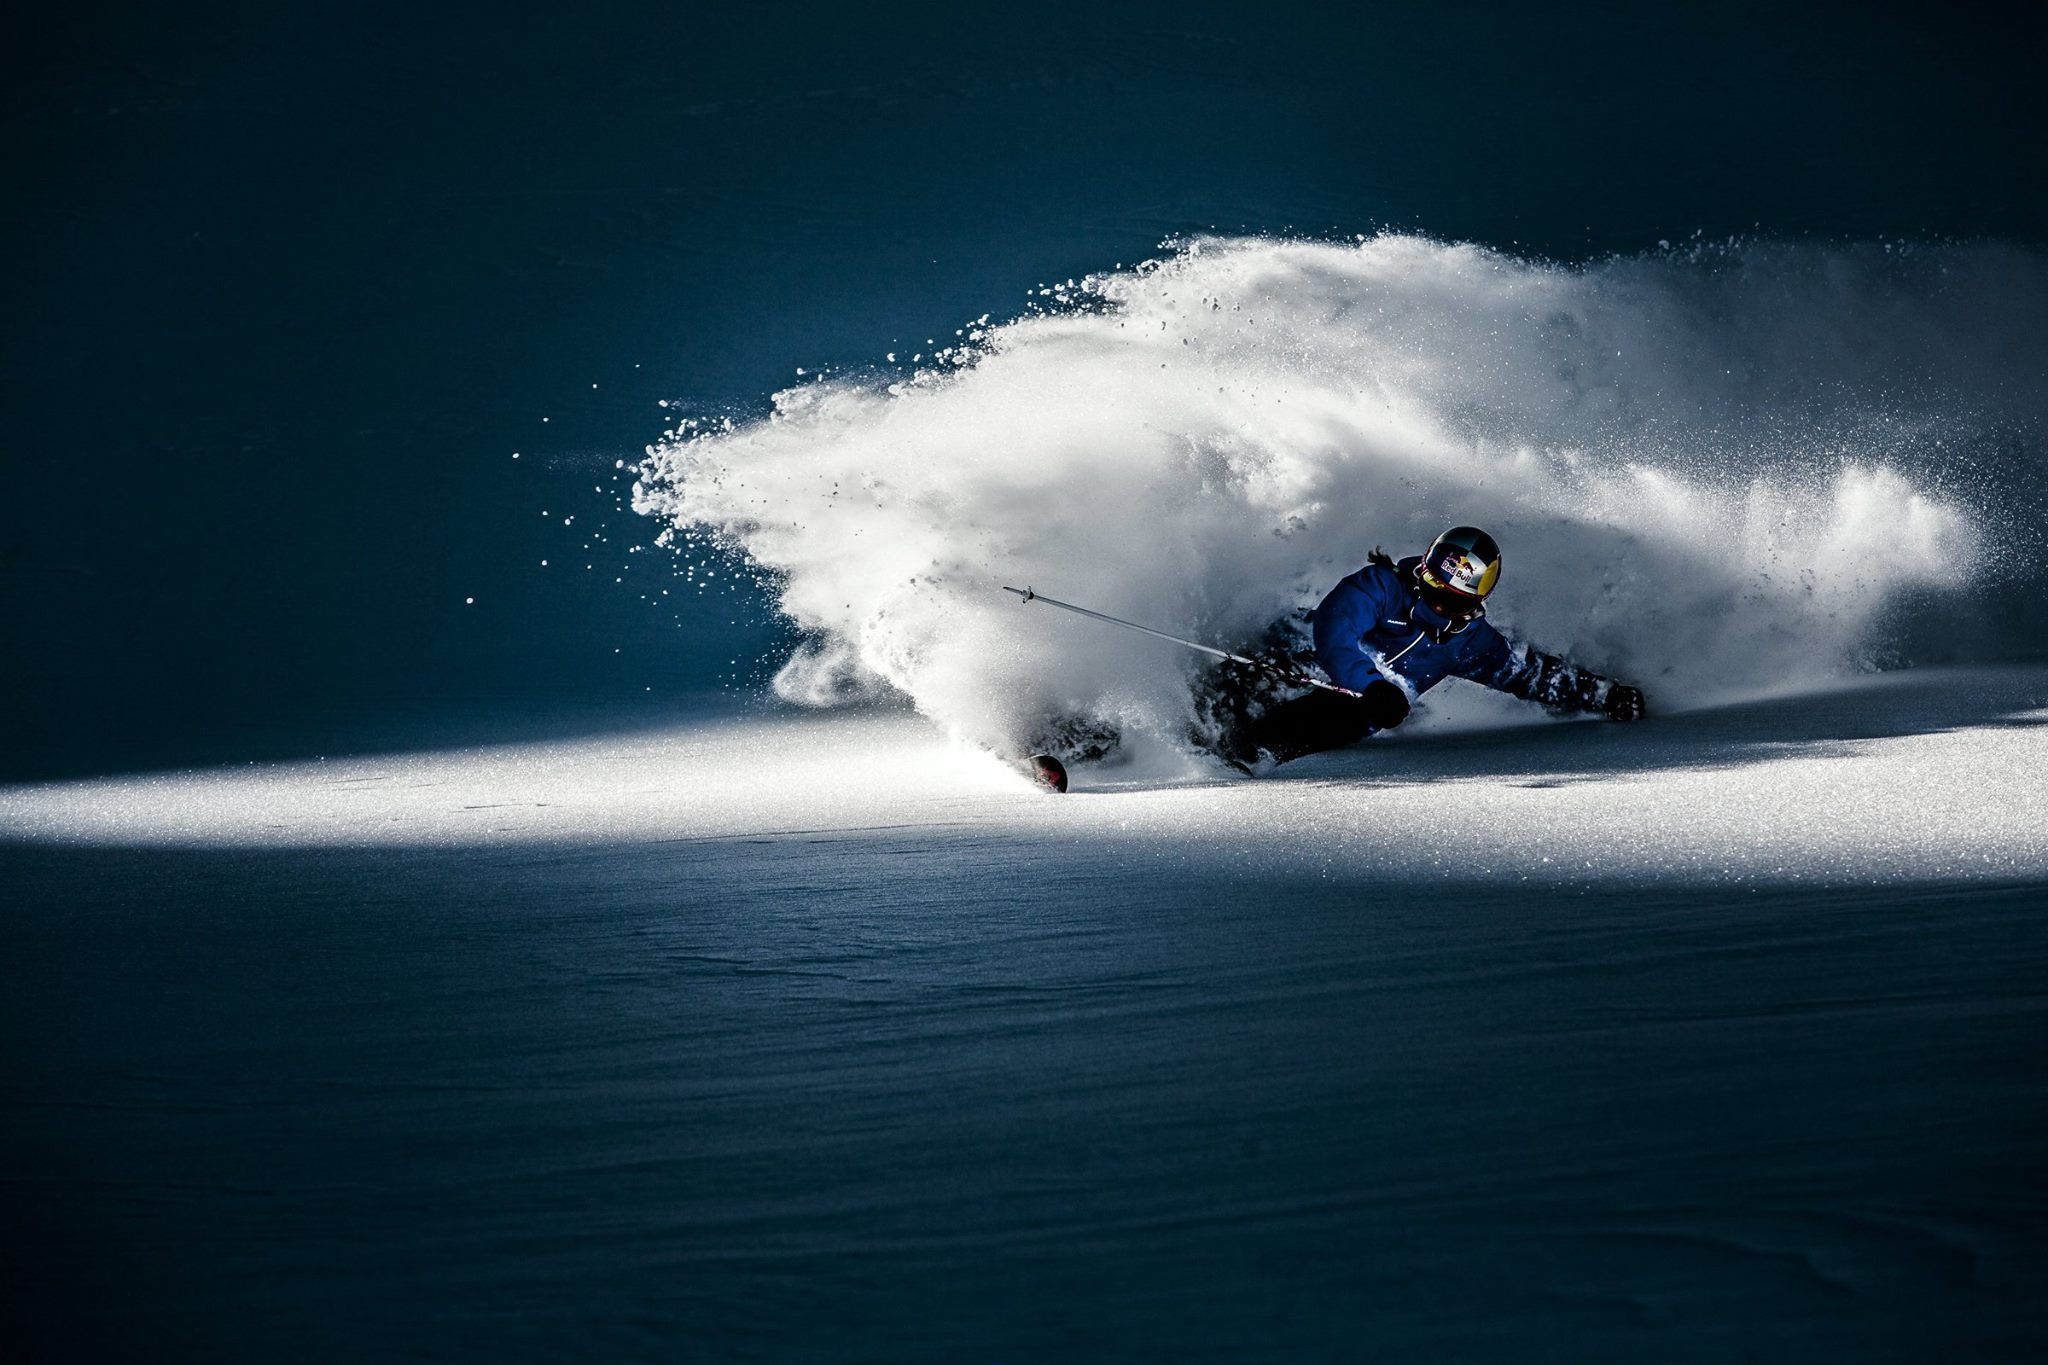 Photo- Christoph Schoech/Red Bull Content Pool Rider- Nadine Wallner